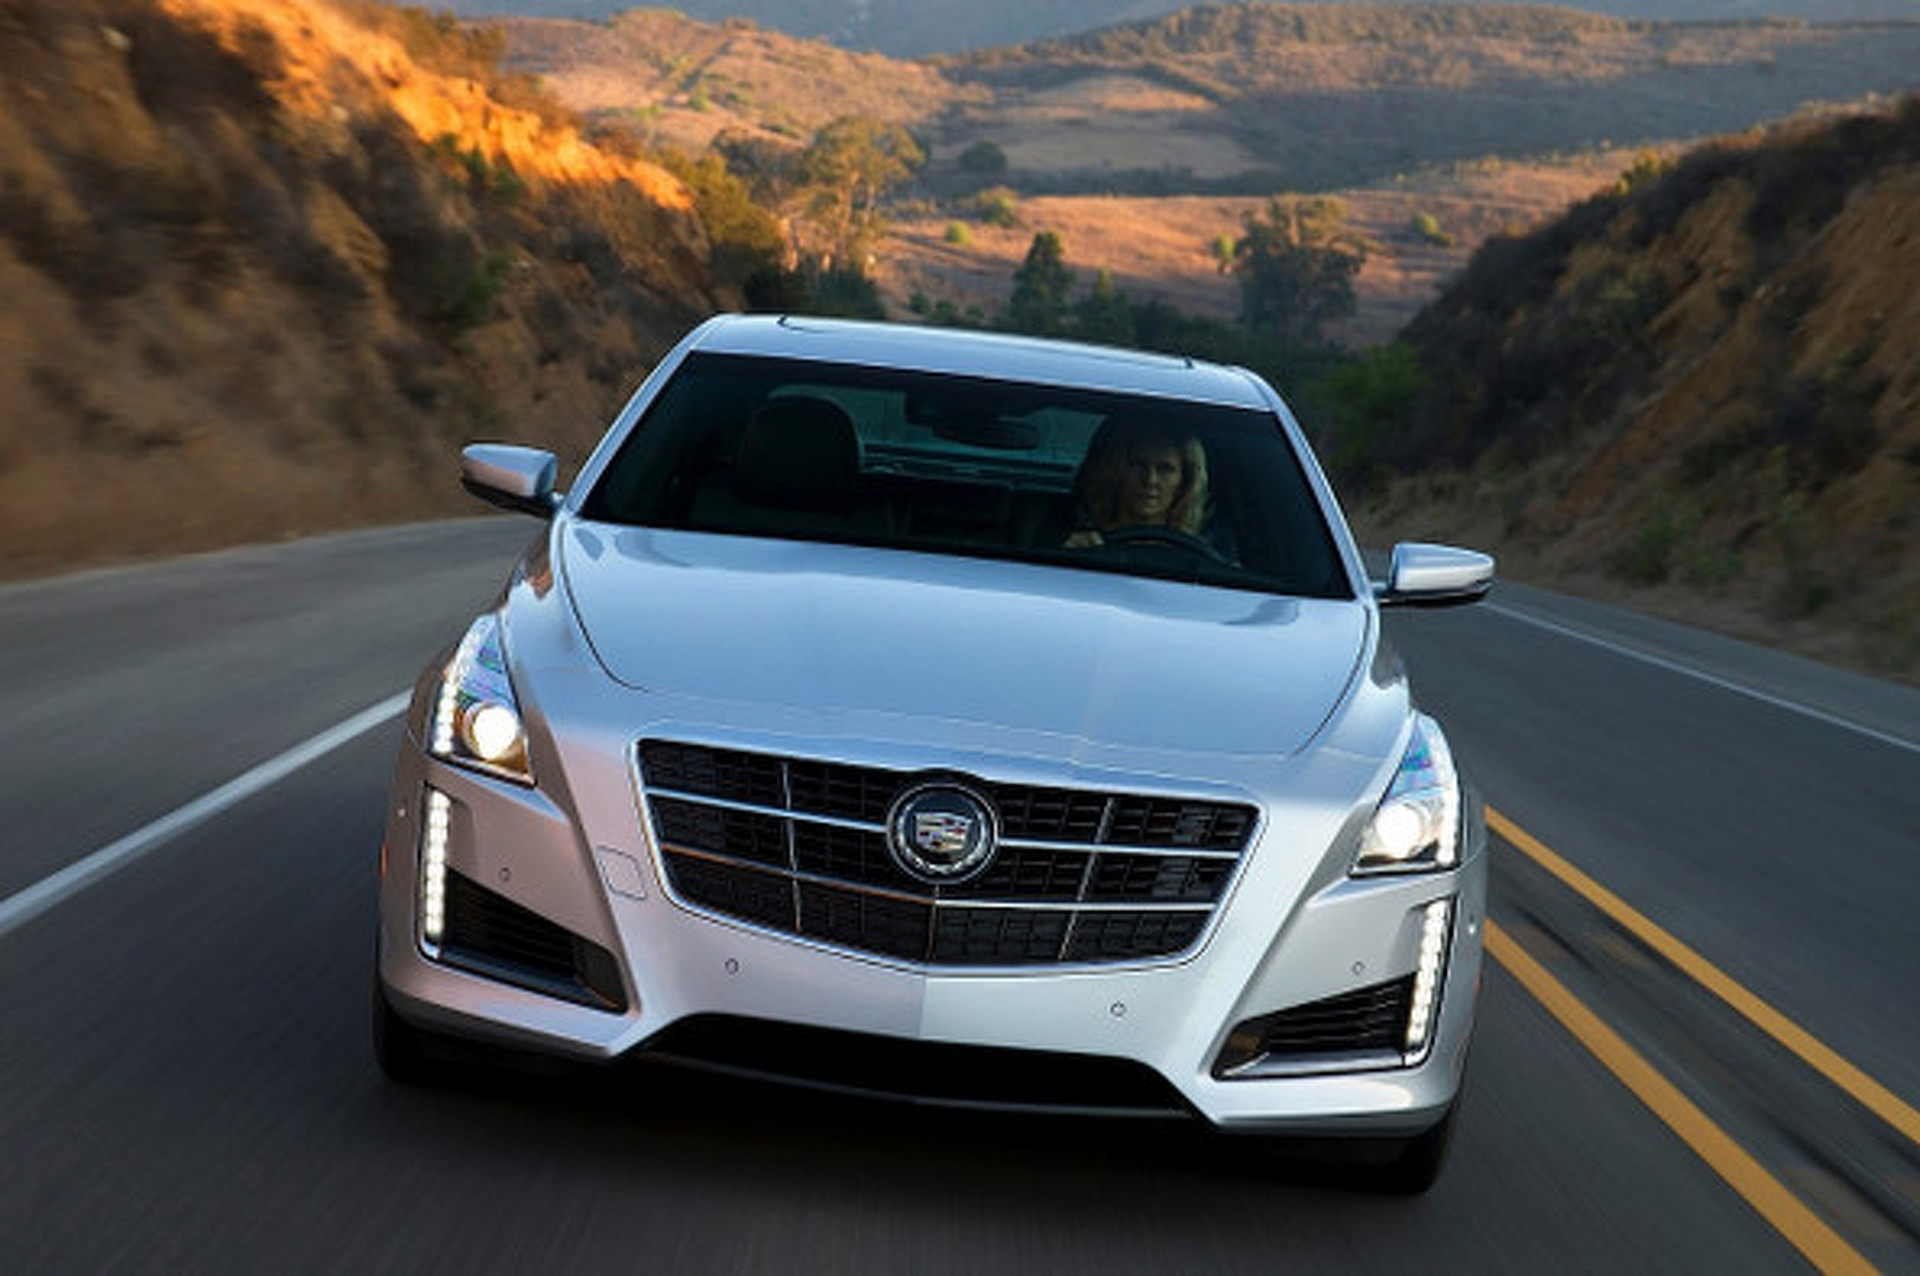 The 10 Safest Car Brands on the Road